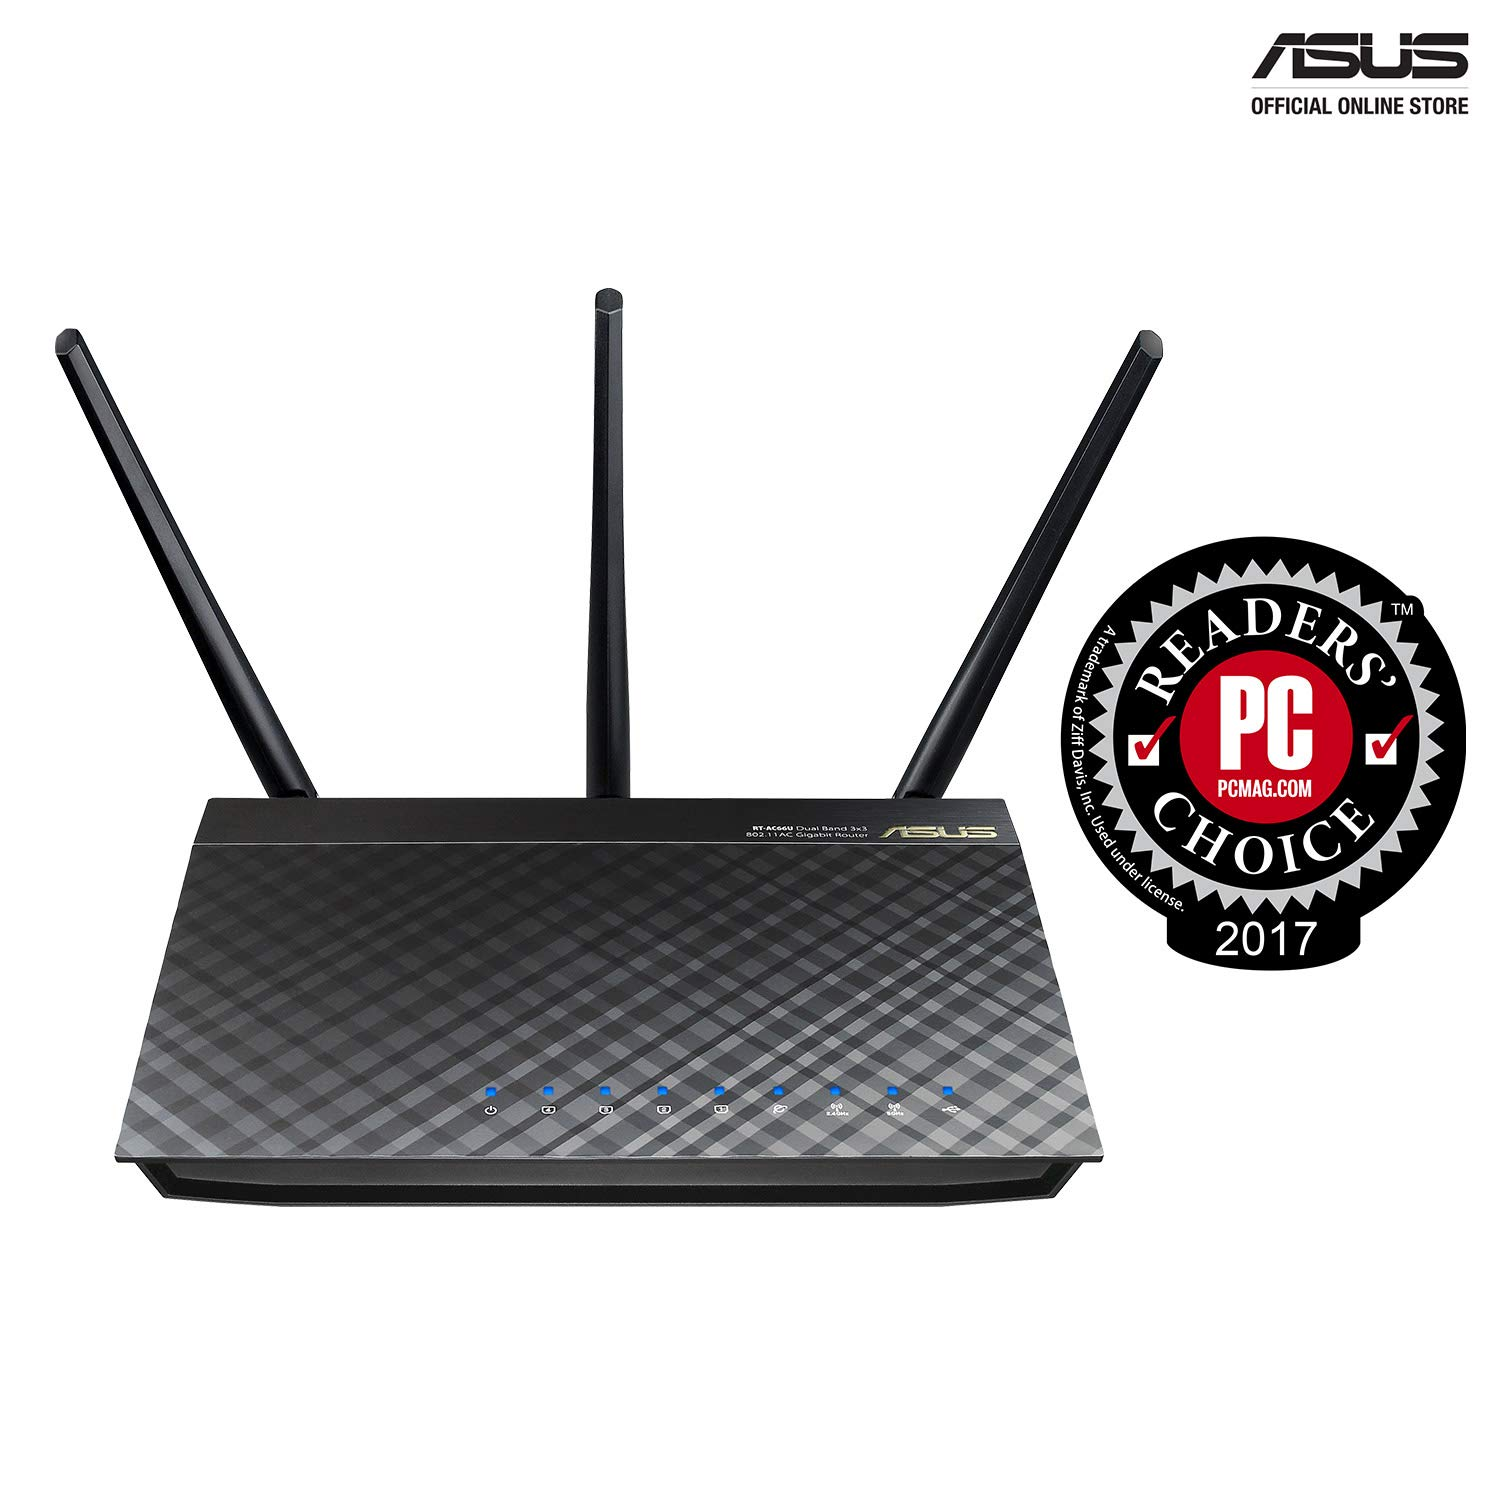 ASUS Dual-band 3x3 AC1750 Wifi 4-port Gigabit Router with speeds up to  1750Mbps & AiRadar to strengthens Wireless Connections via High-powered